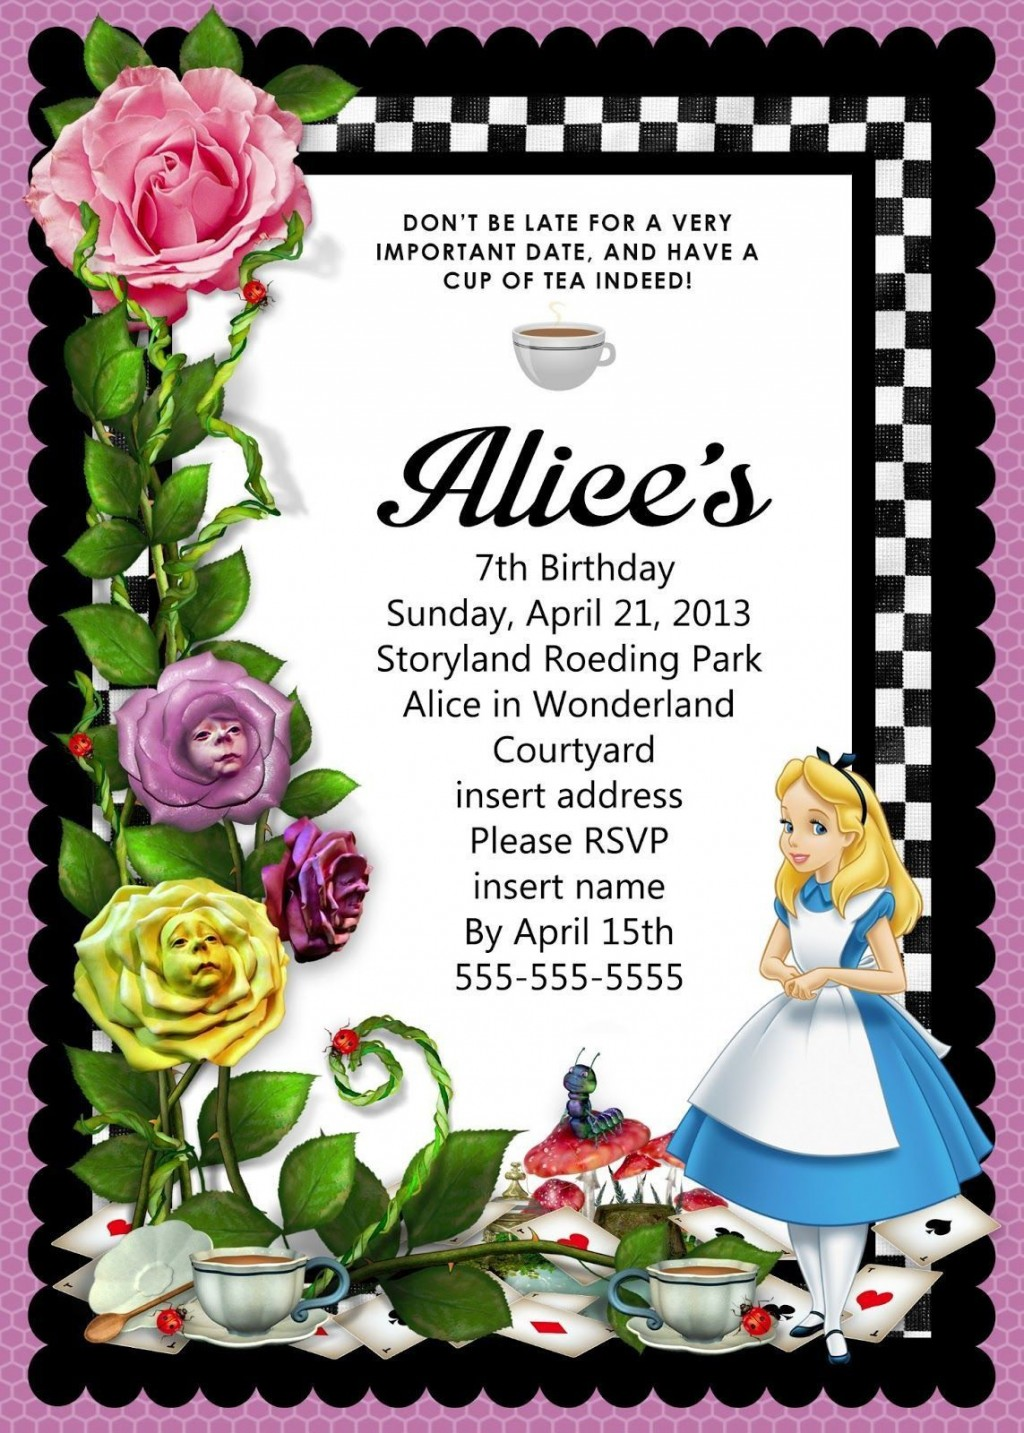 009 Fantastic Alice In Wonderland Invitation Template High Definition  Templates Birthday Free Wedding Wording DownloadLarge